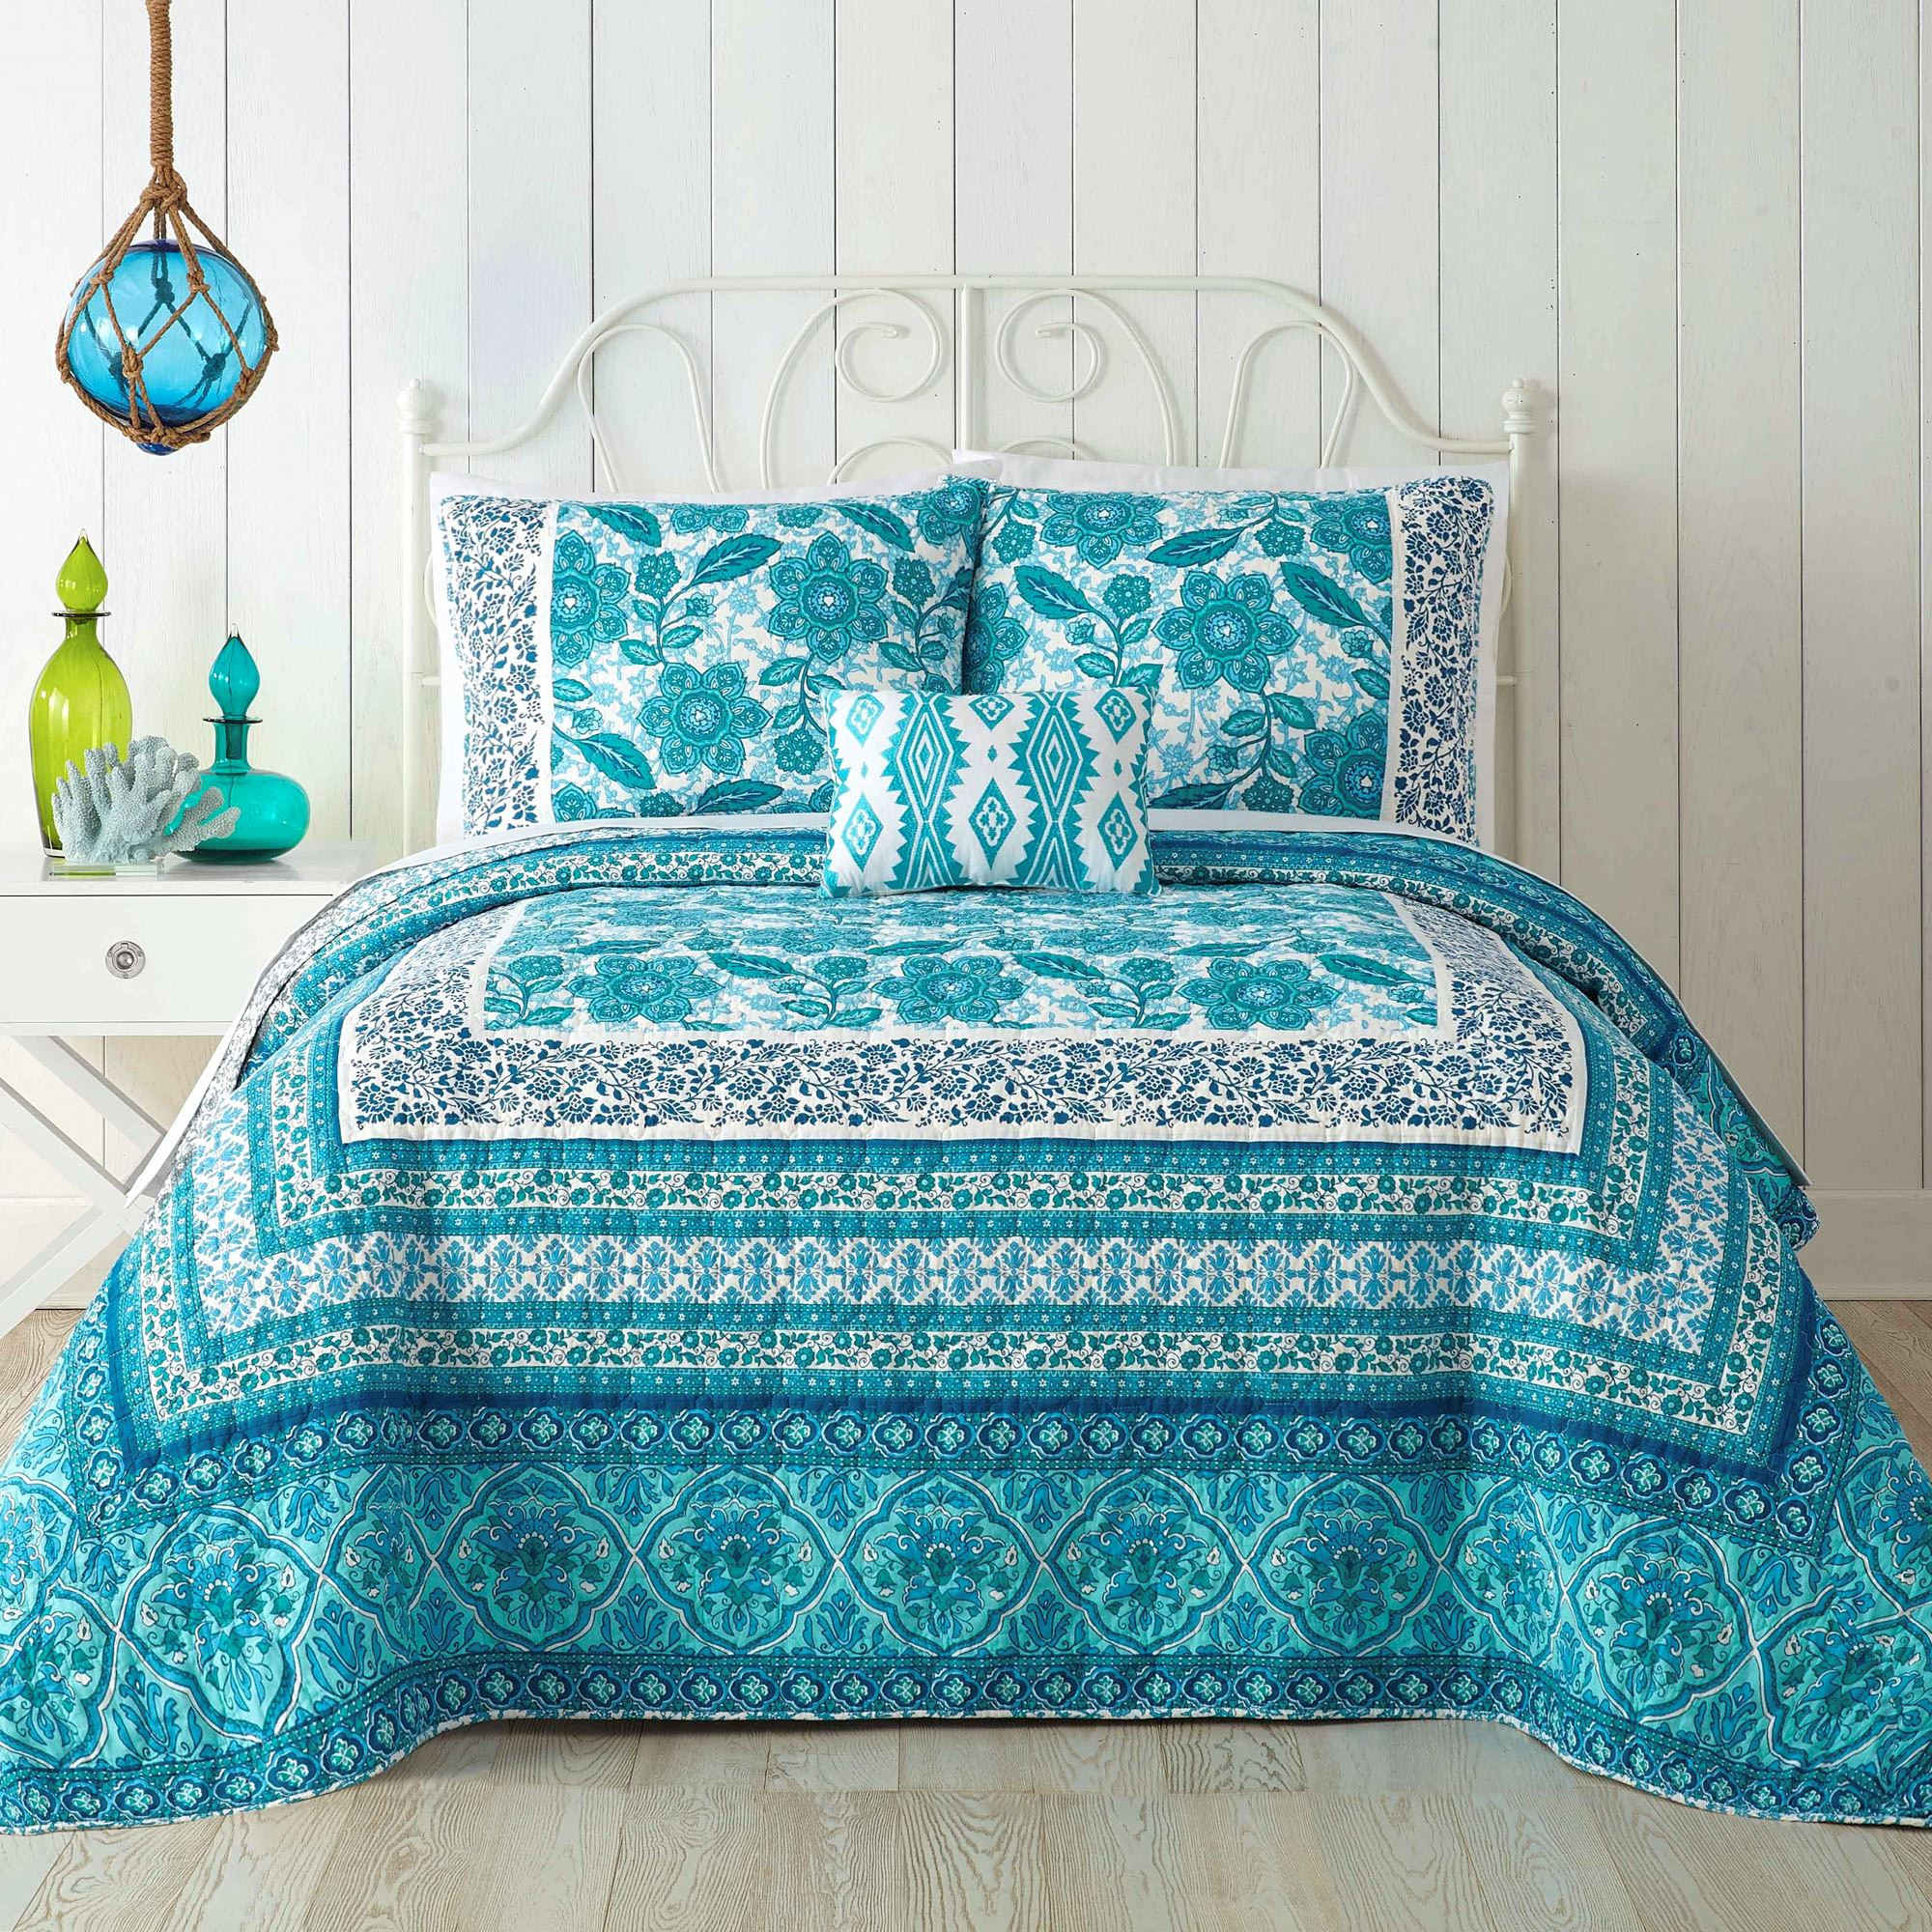 quilts category quilt market bohemian bath duvet floral bed xxx corinne do world